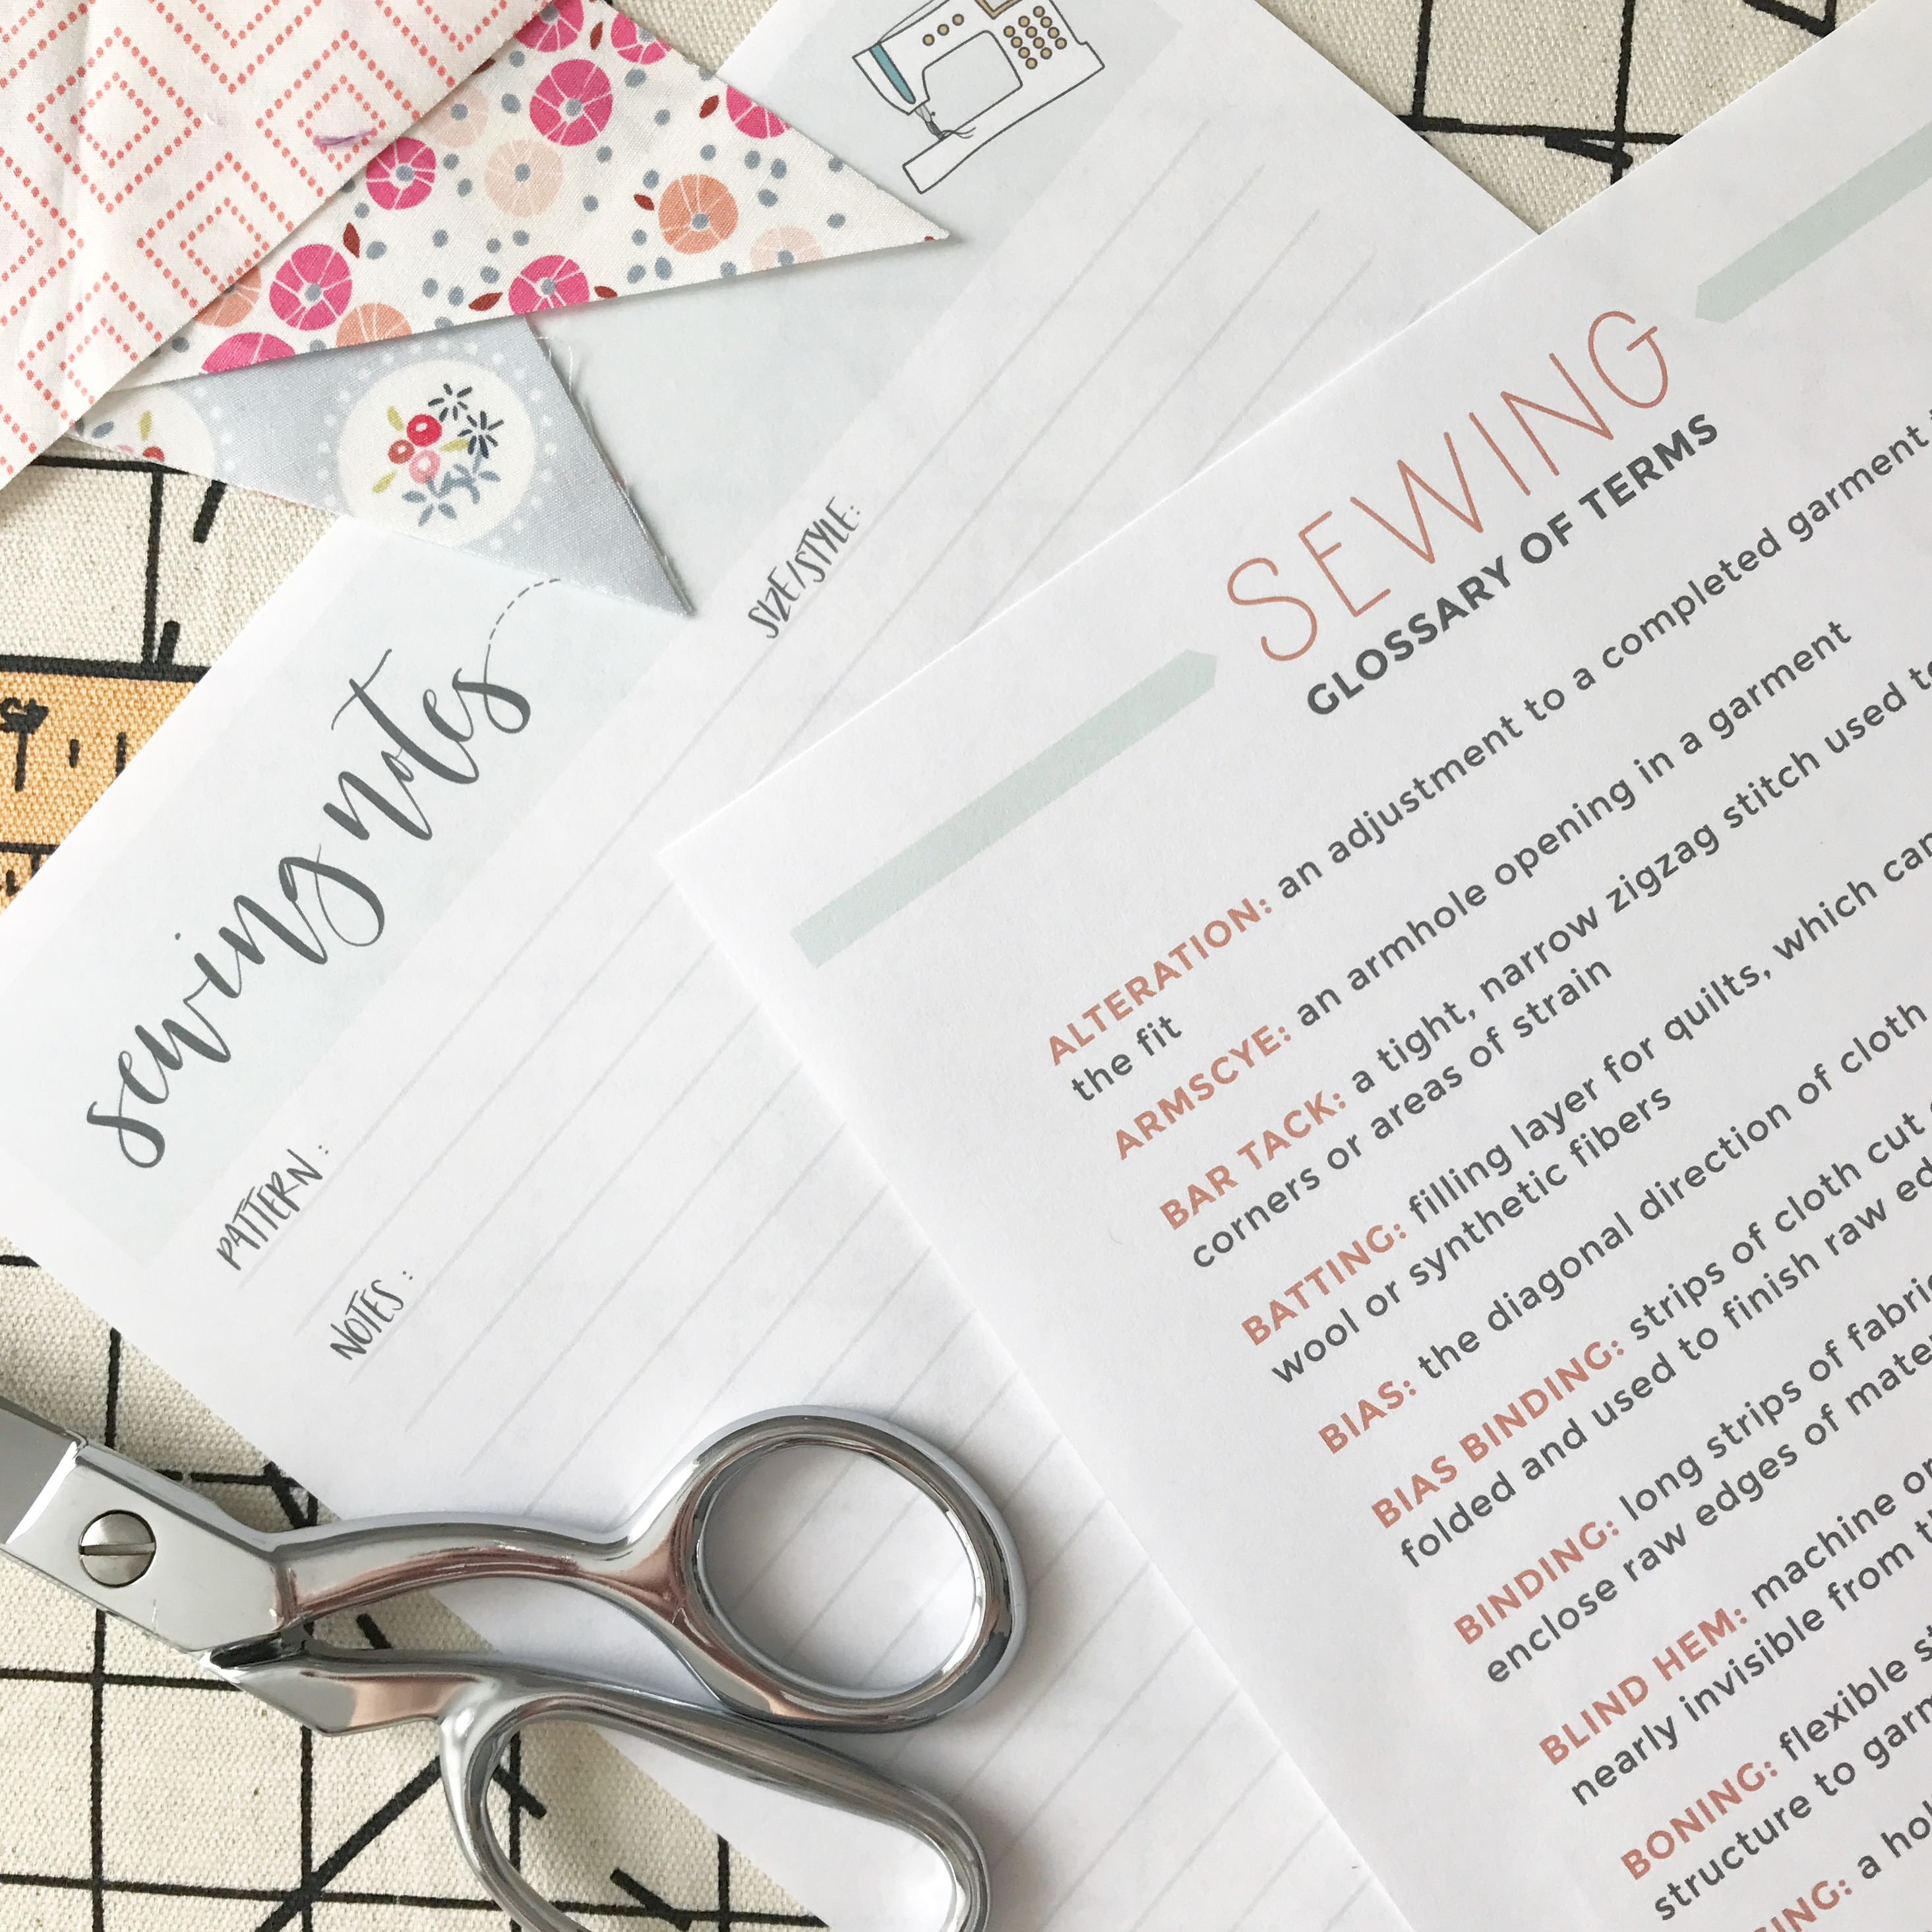 Free Downloads | Sewing Glossary of Terms | Radiant Home Studio